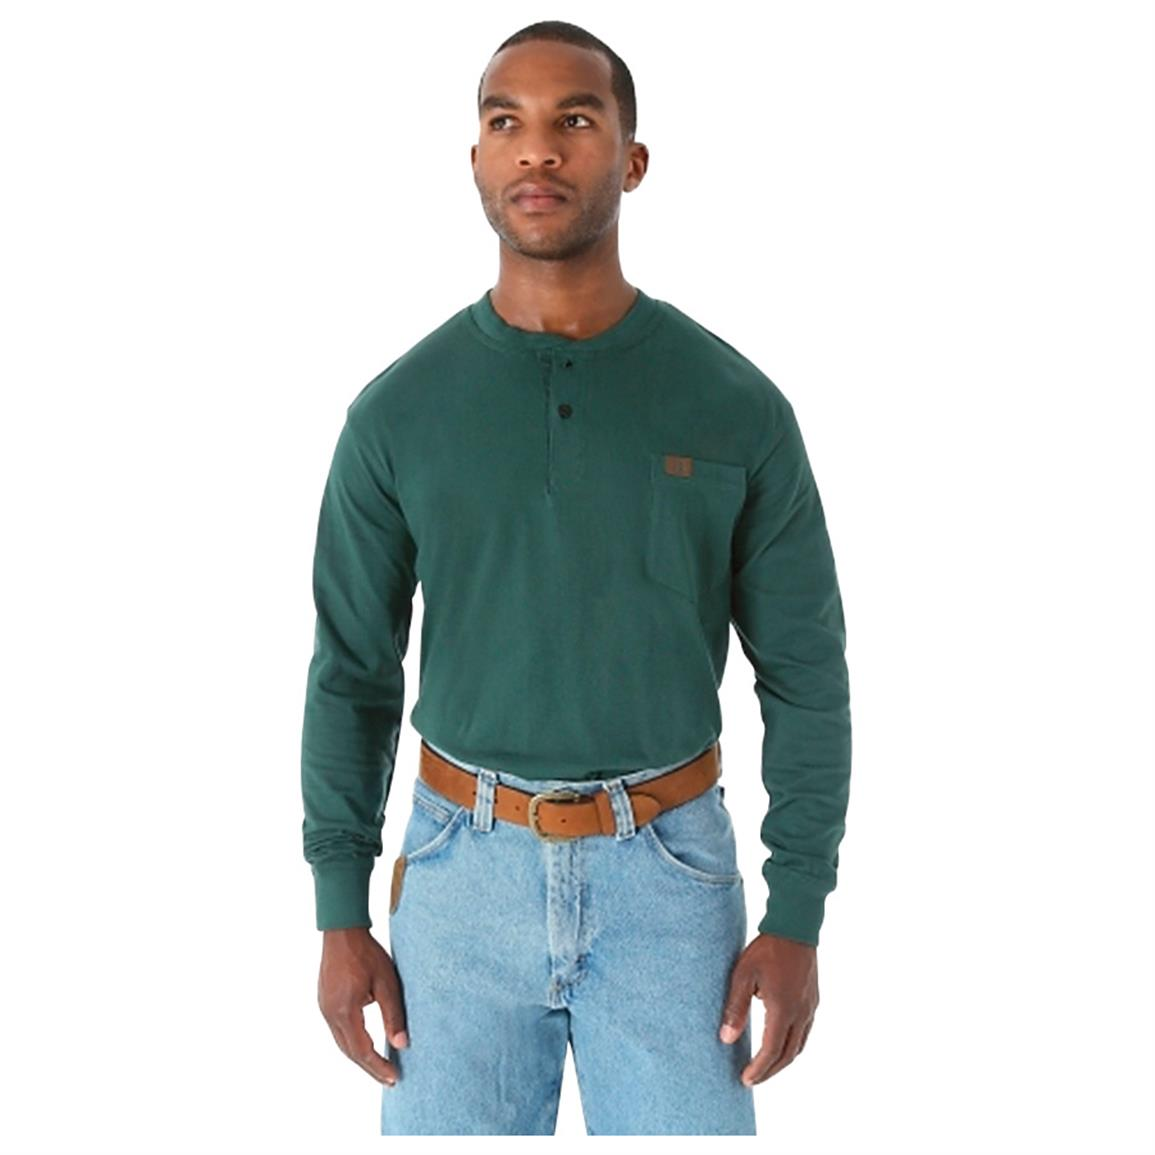 Wrangler RIGGS Workwear Long Sleeve Henley Shirt, Forest Green